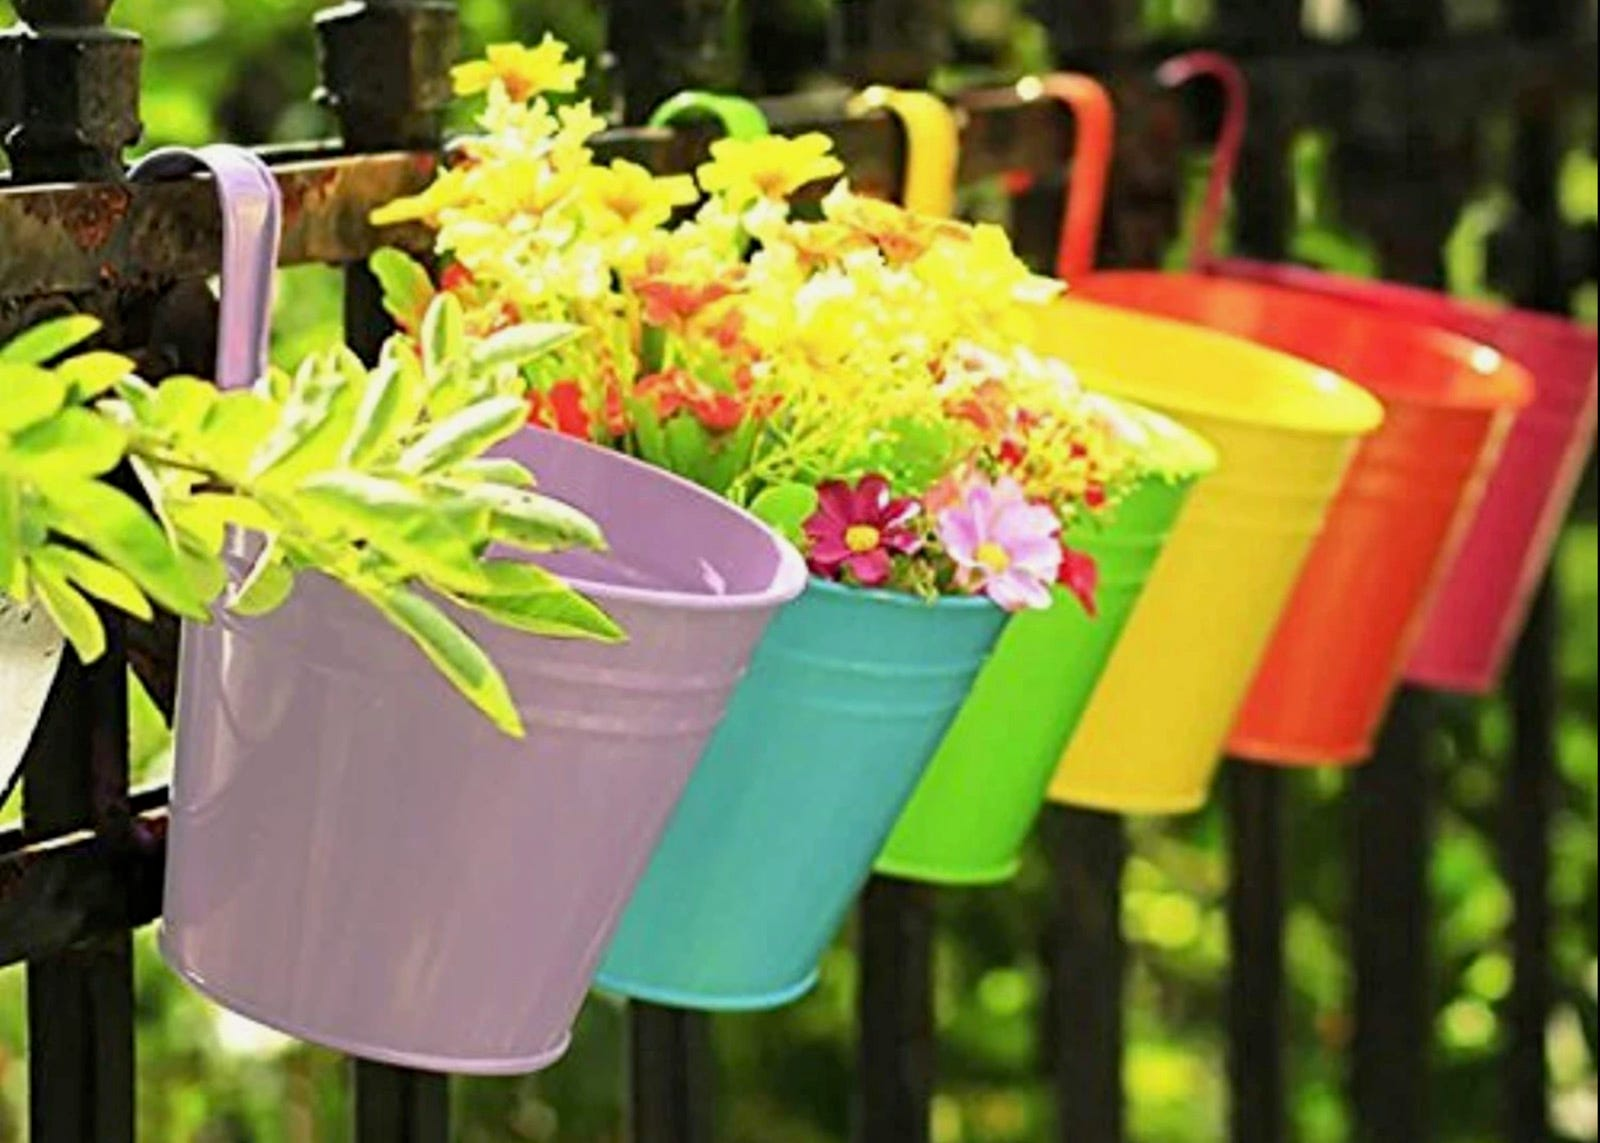 A row of flowerpots in a rainbow of colors hanging from a railing.